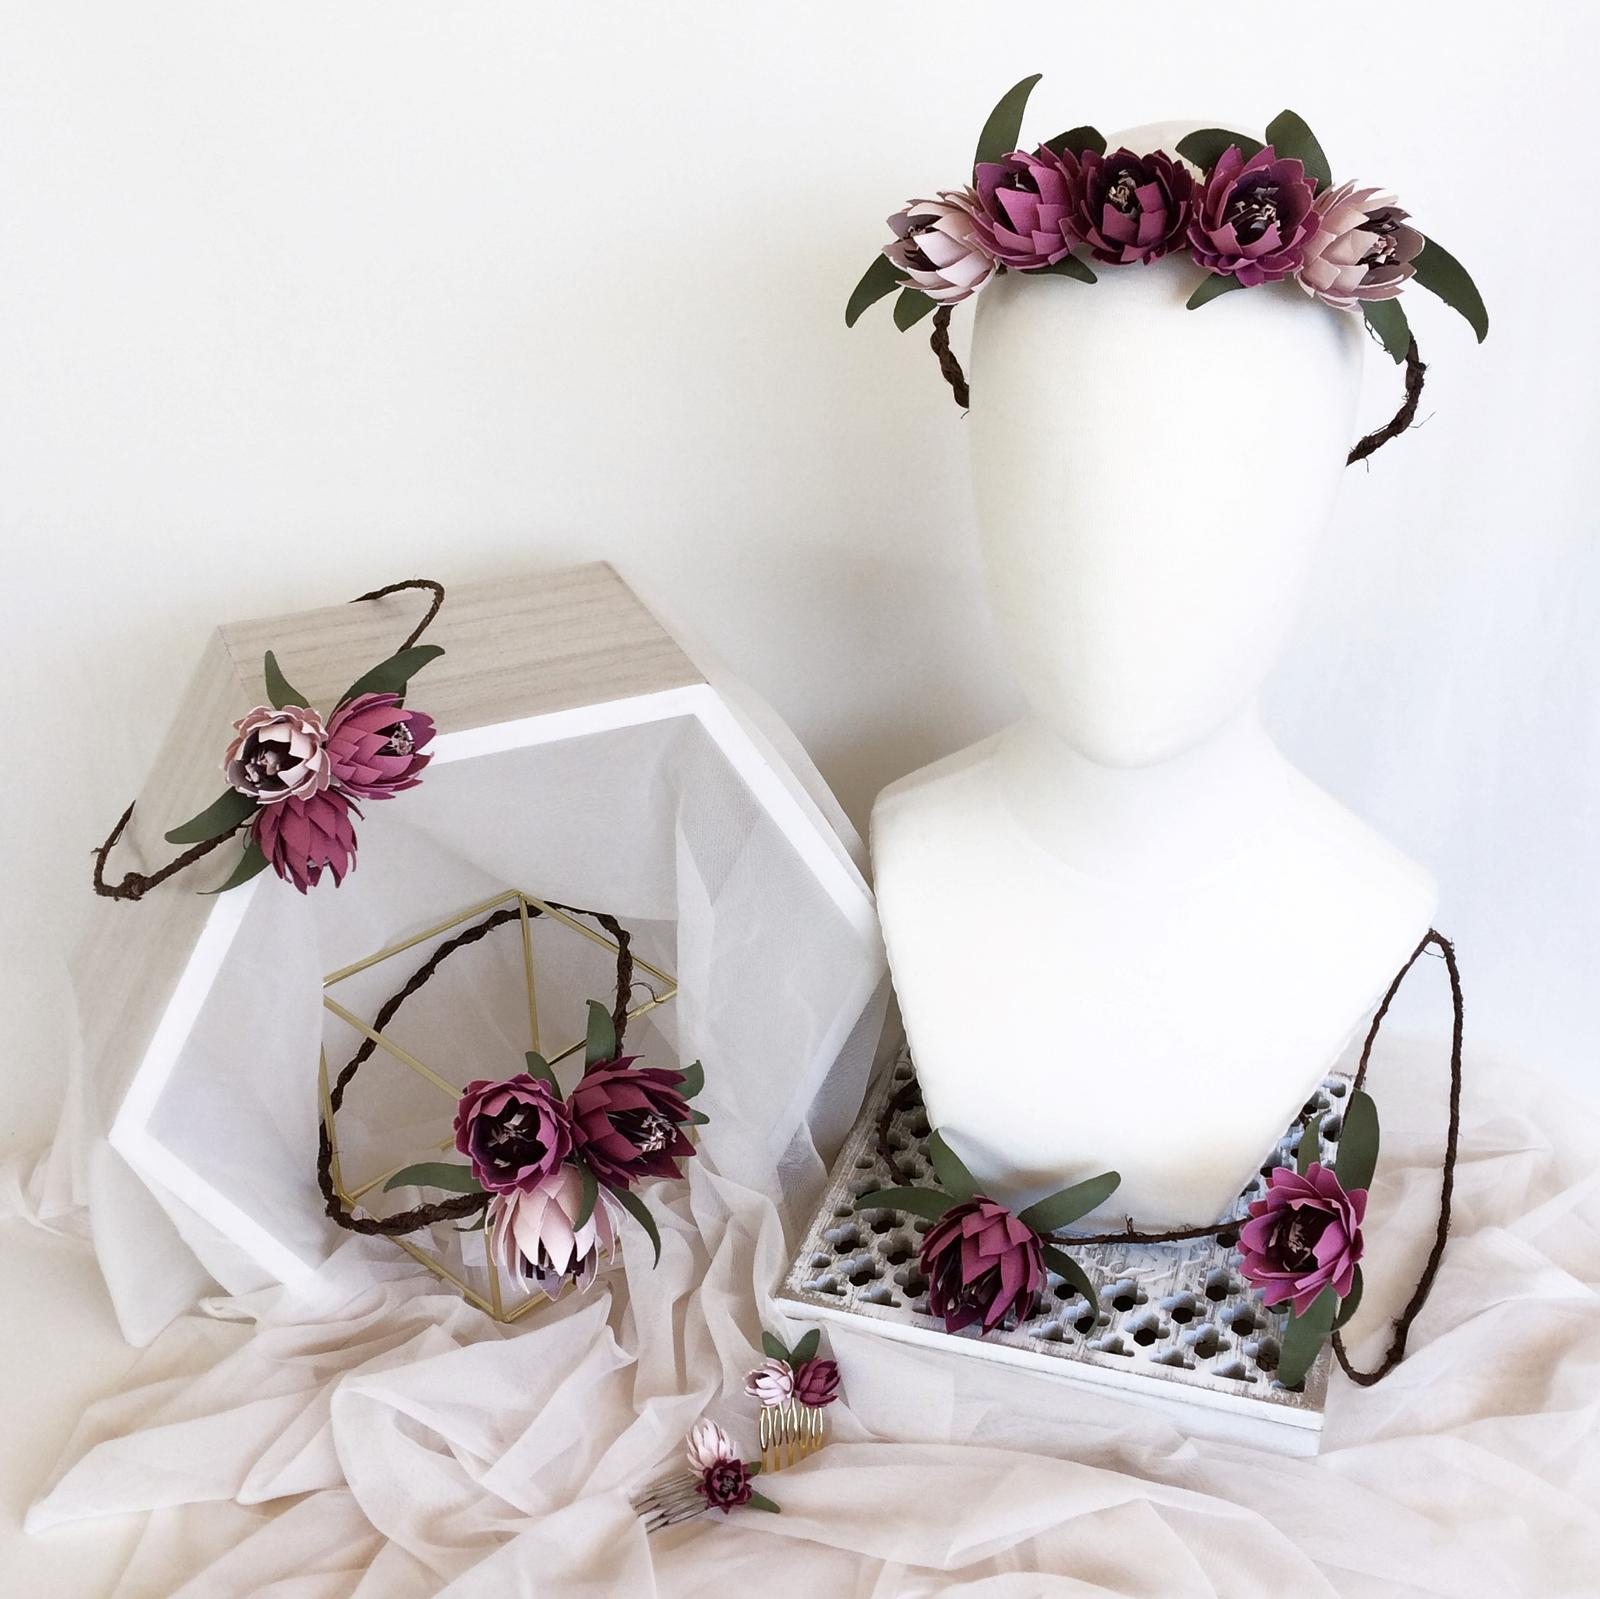 Paper Flower Protea Range Hair Accessories, Phantom Rose Artistry